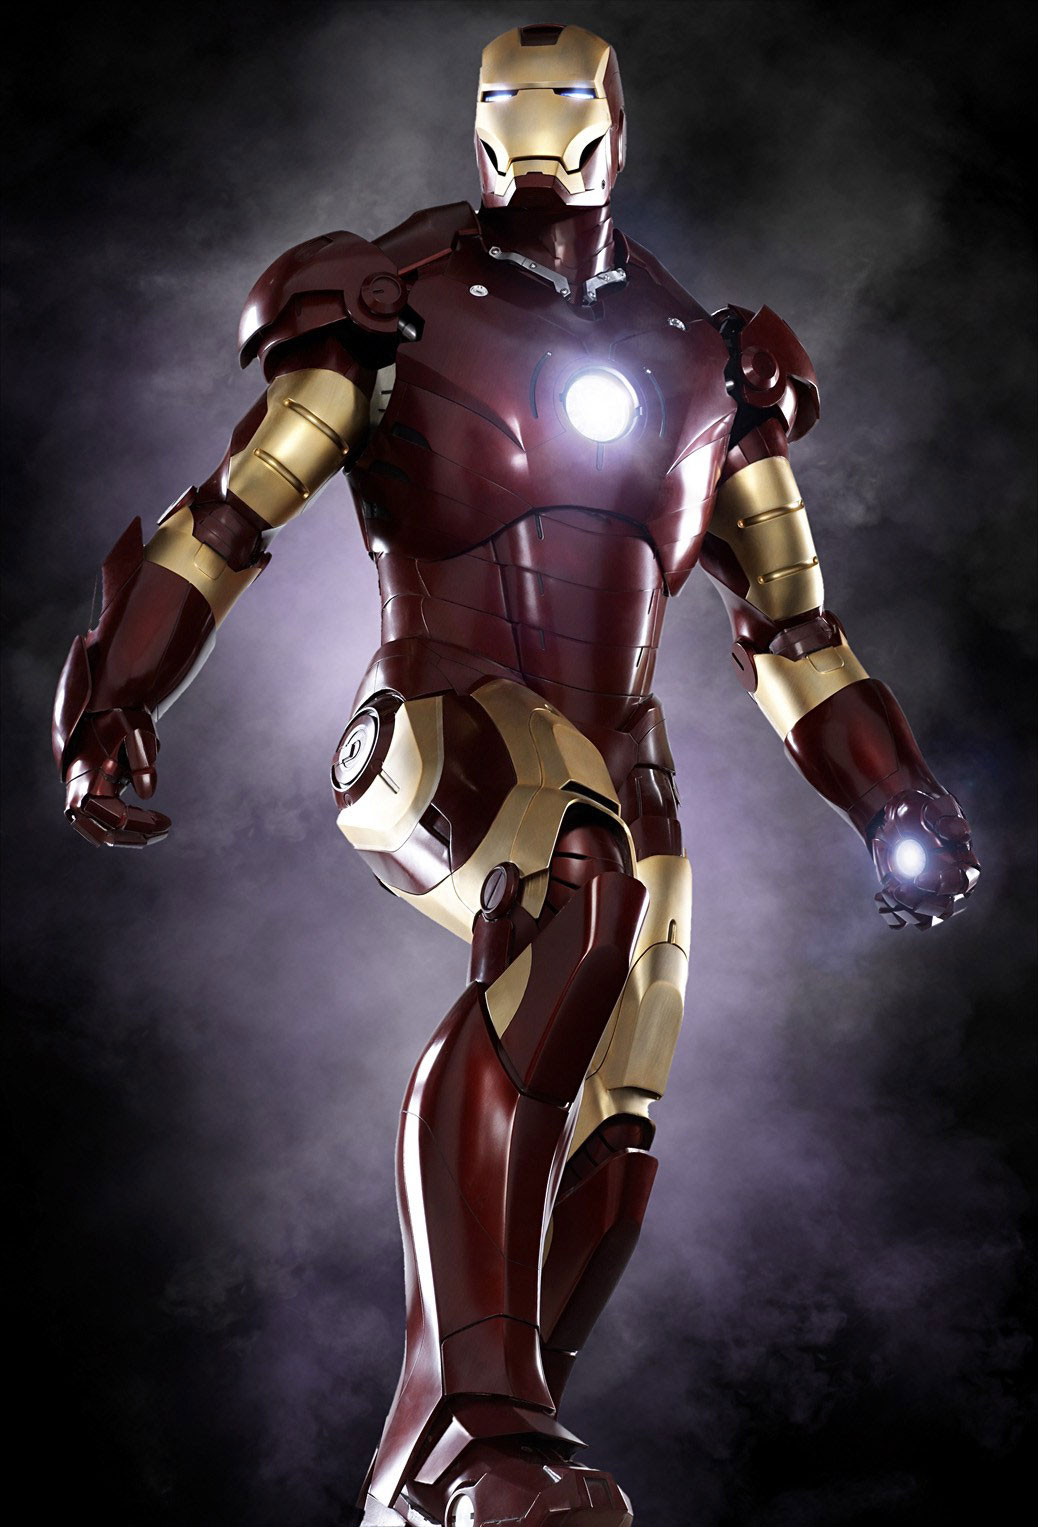 https://i1.wp.com/www.scifimoviepage.com/upcoming/photos/ironman1.jpg